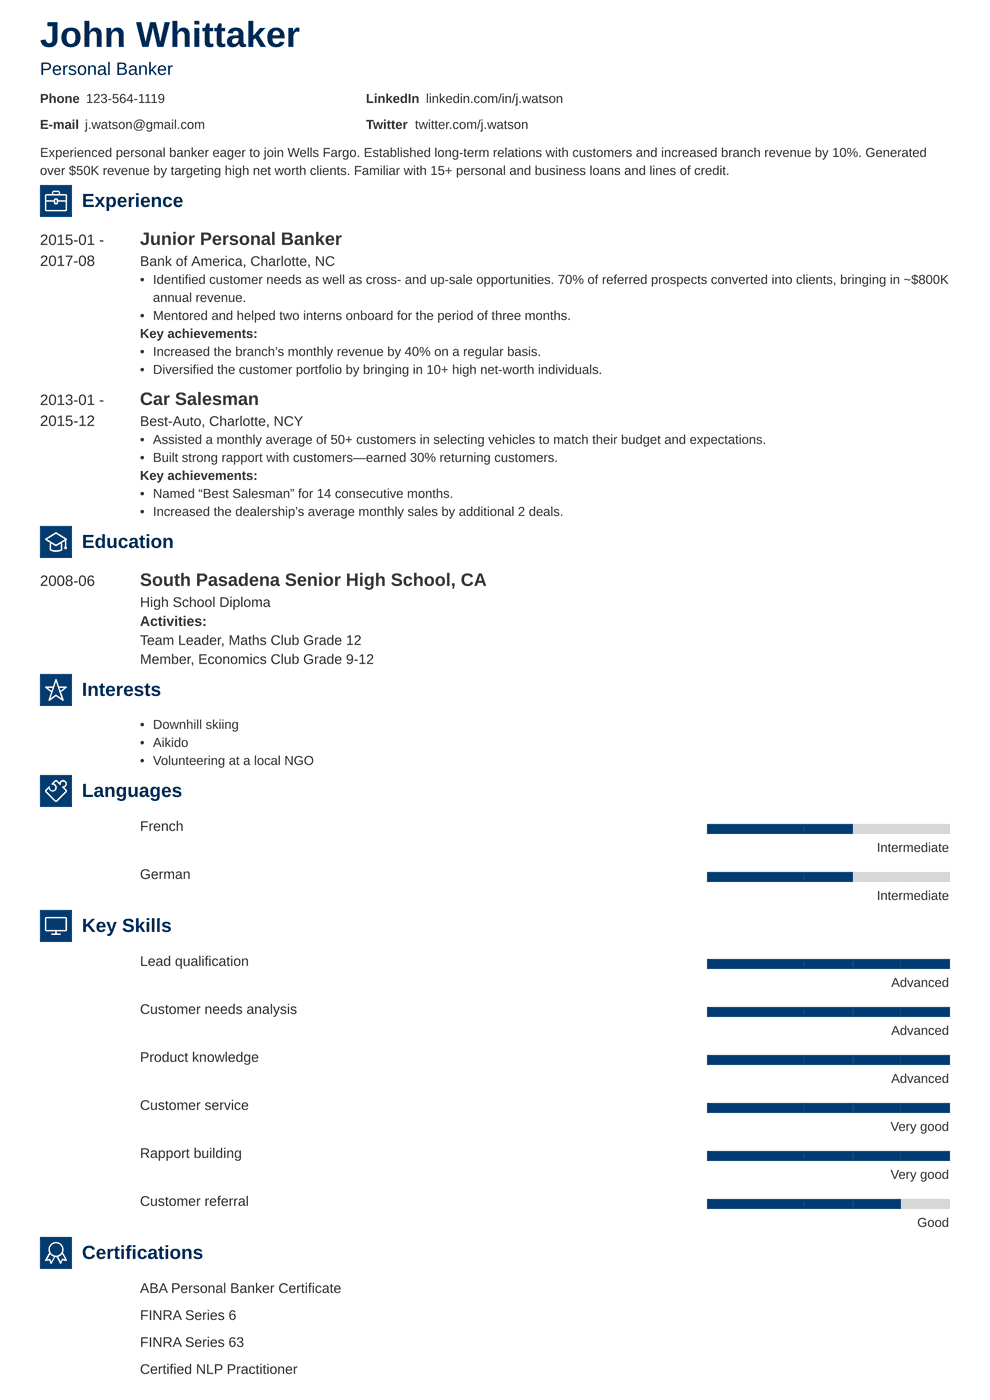 resume for personal banker